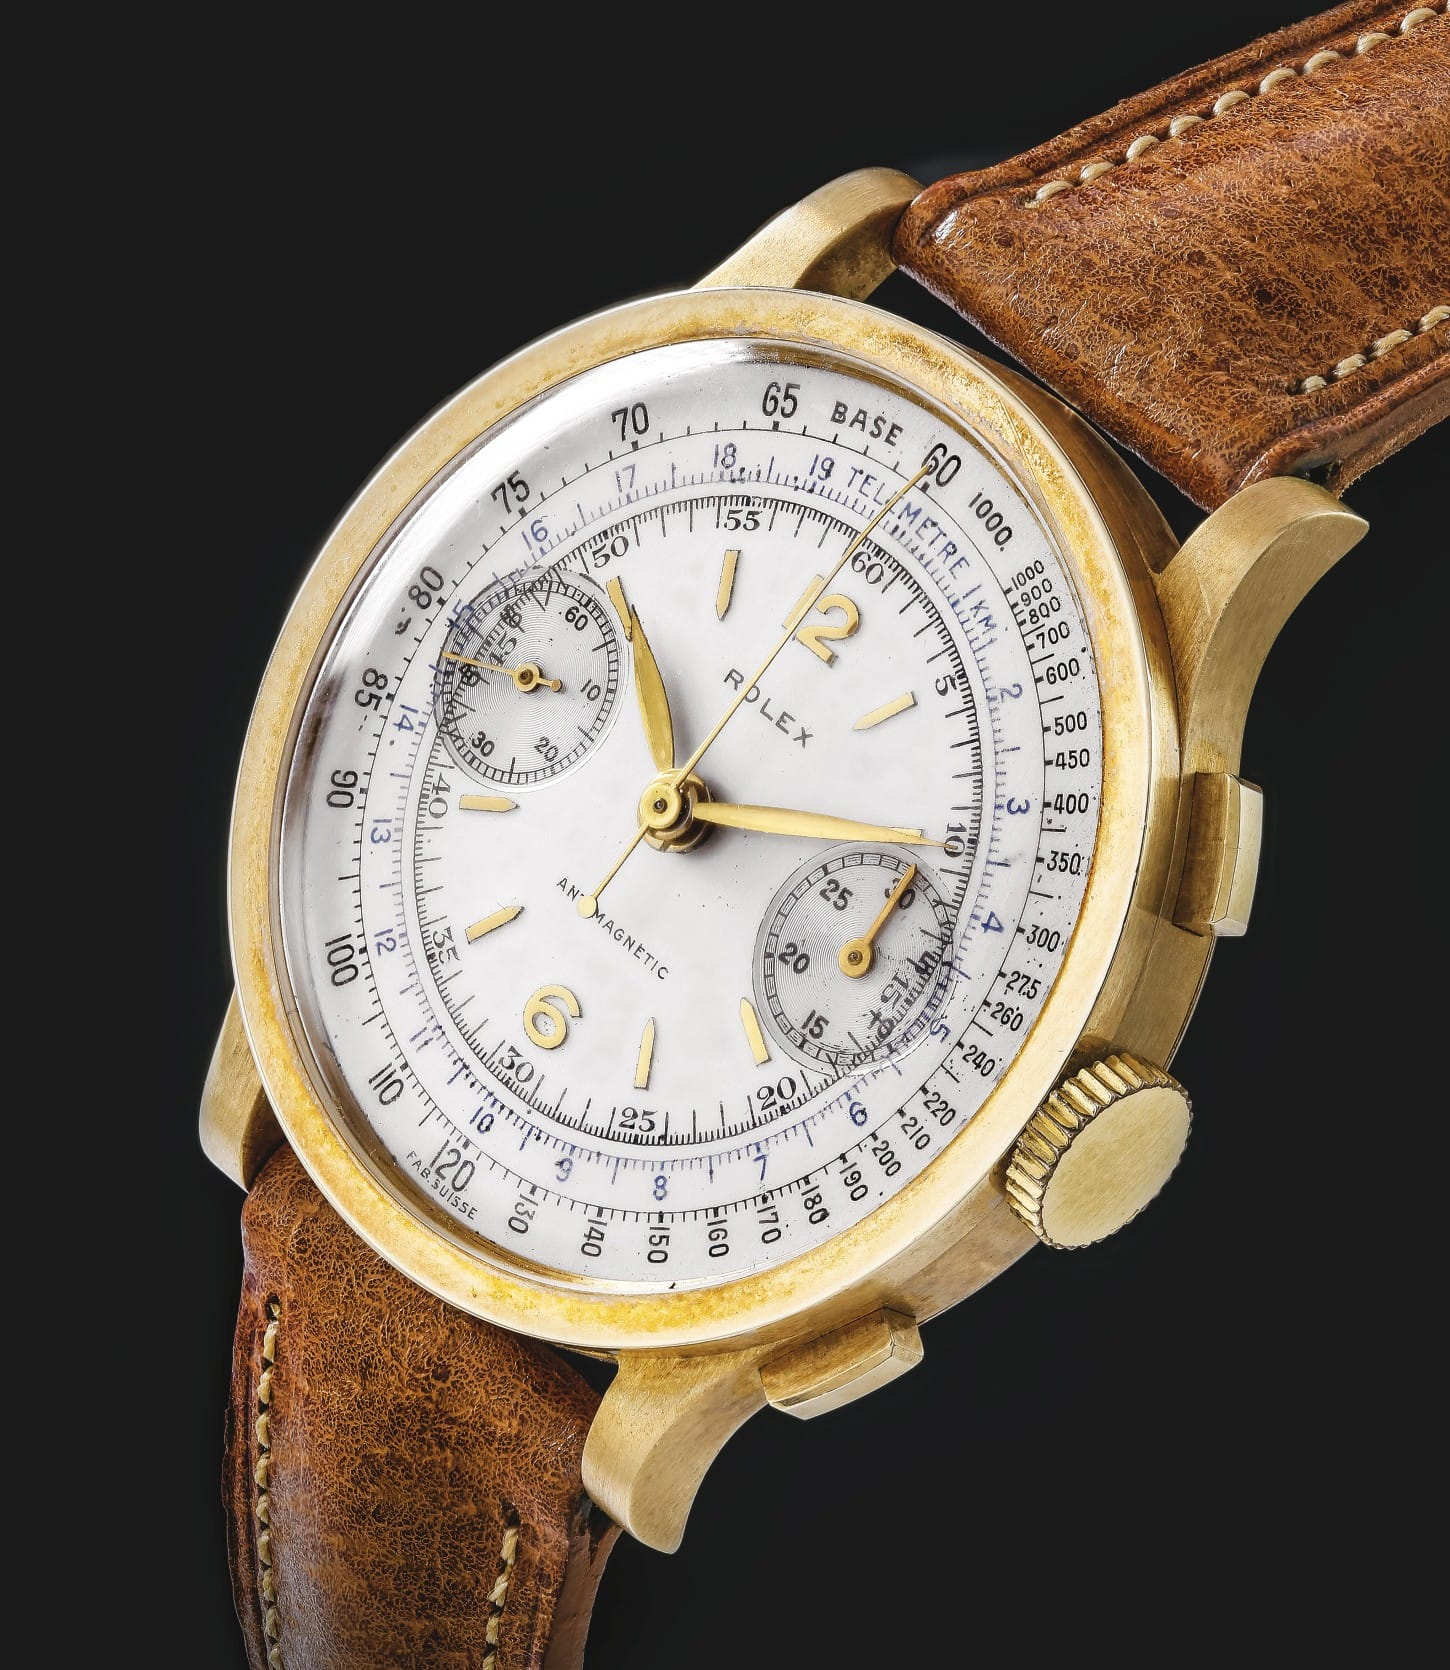 Rolex 2508 Chronograph (Image courtesy of sothebys.com)